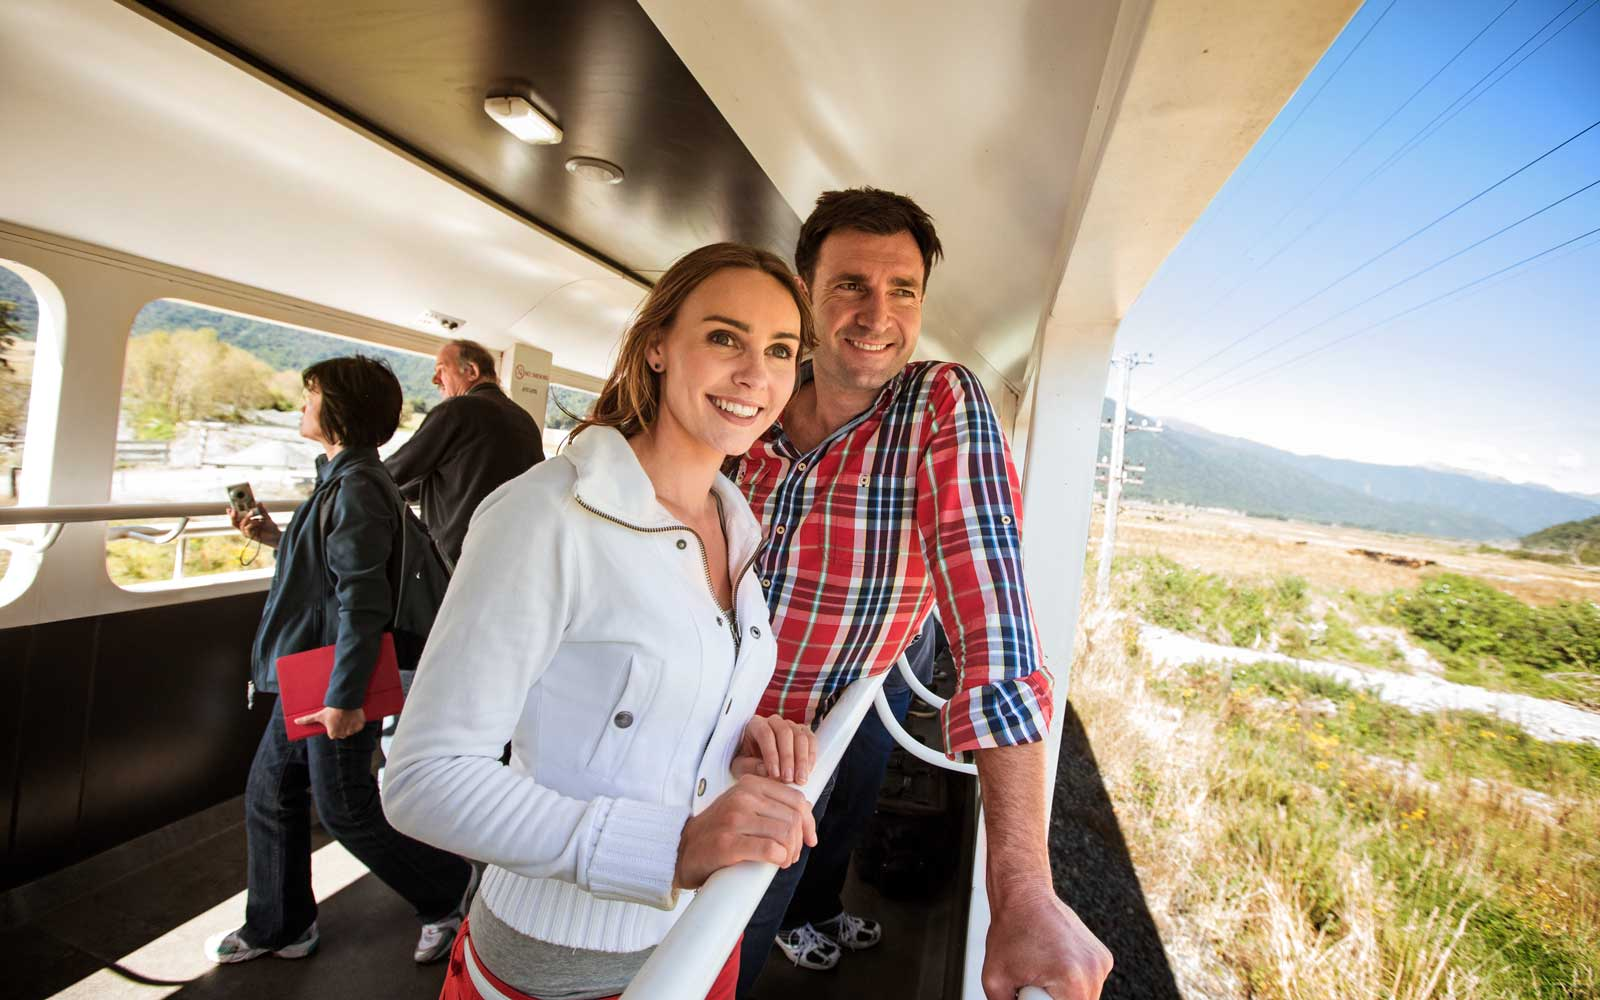 New Zealand Rail Had to Close Its Open-air Viewing Cars Because Passengers Were Taking Dangerous Selfies